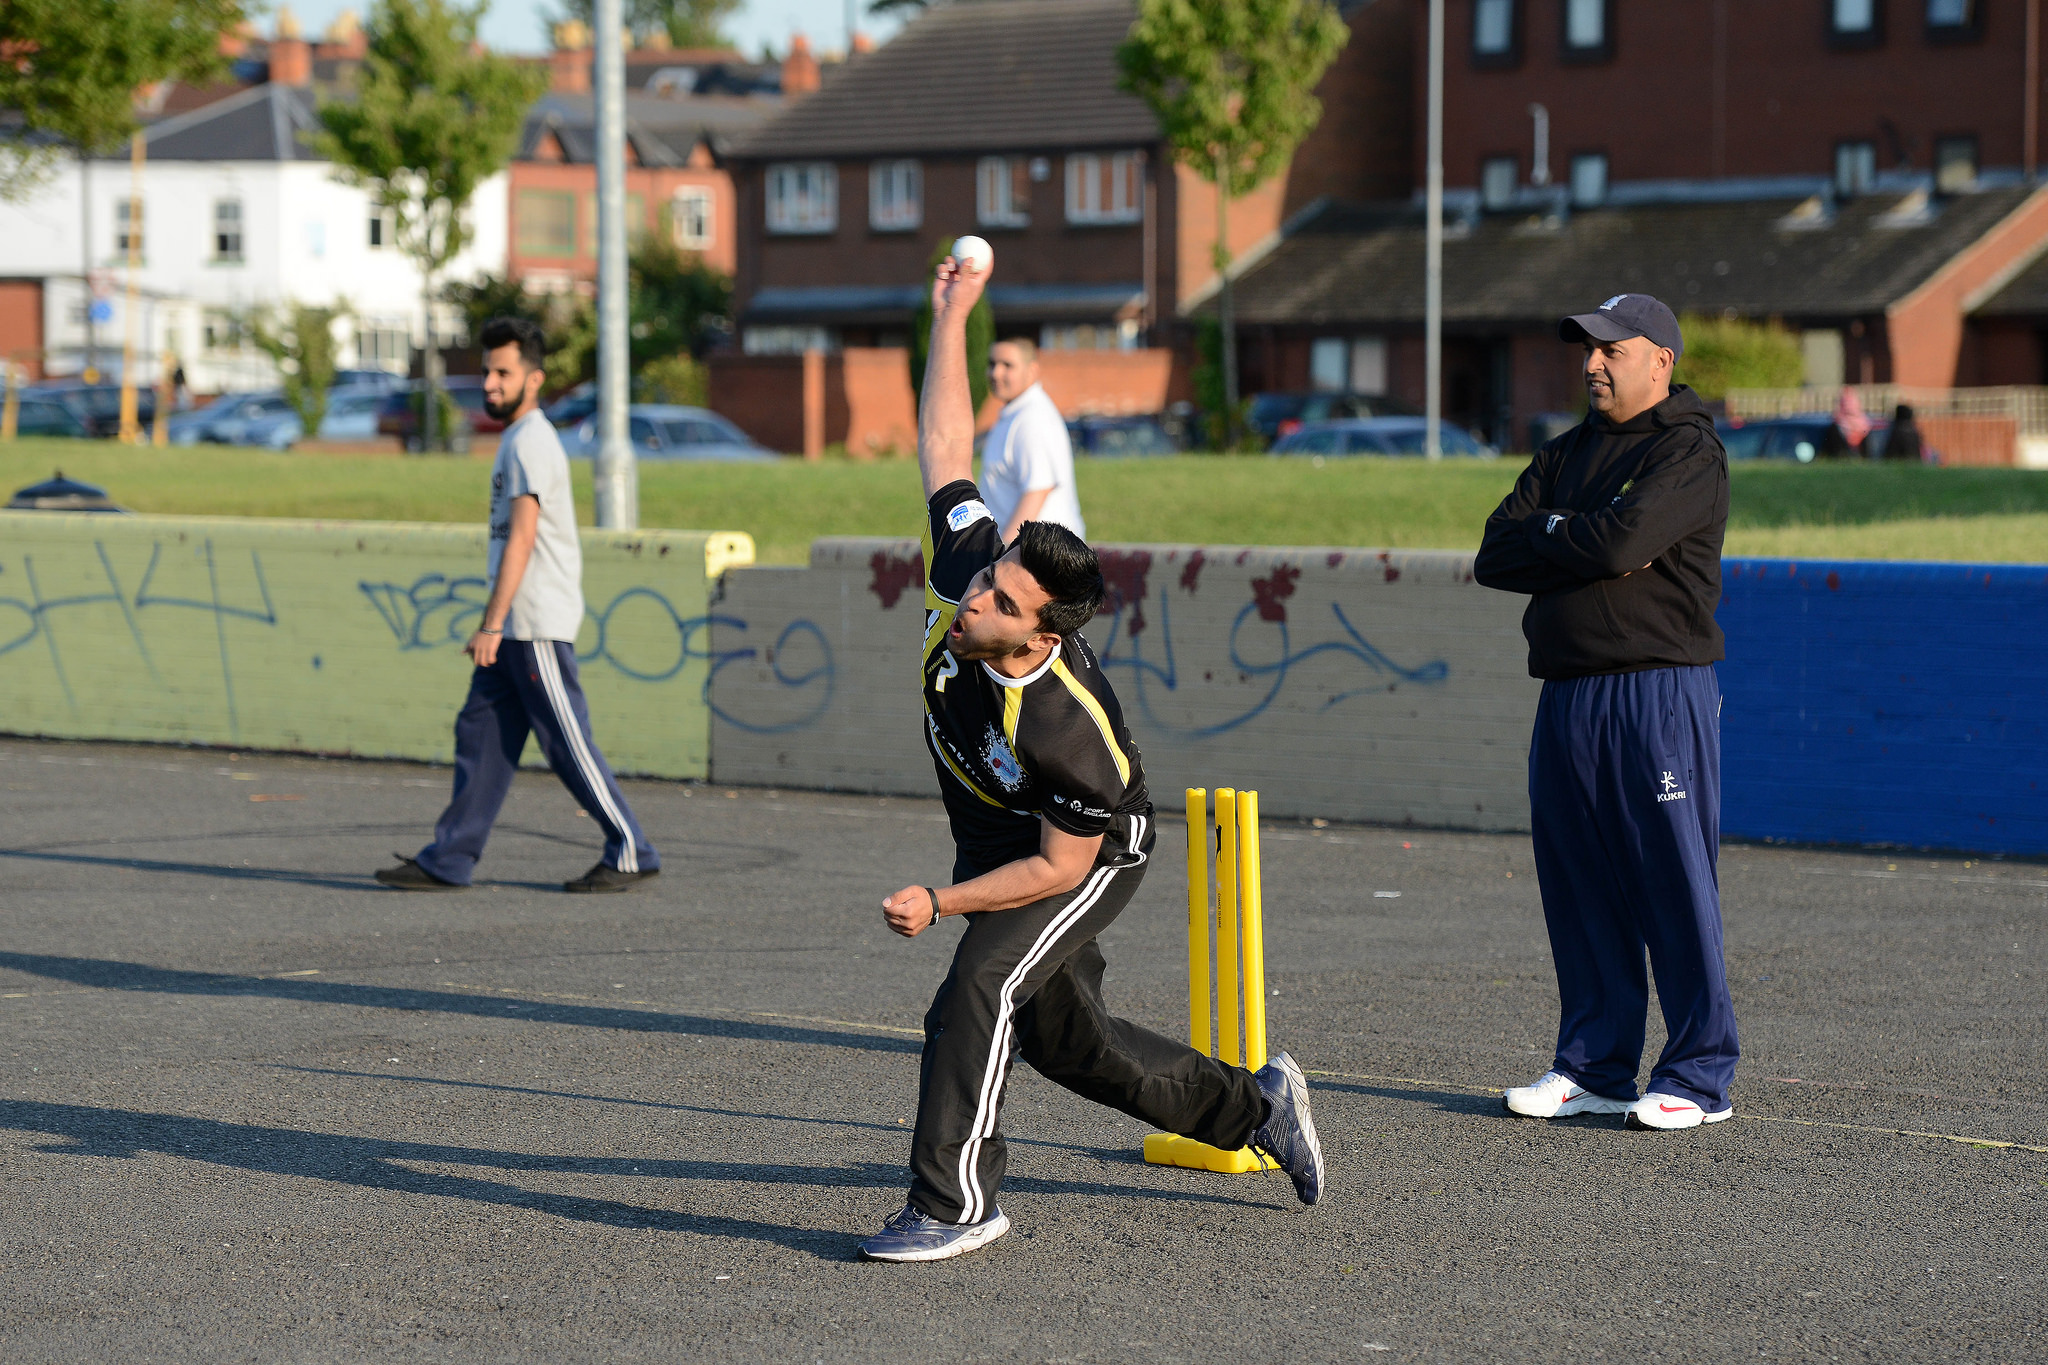 A teenage boy bowls a cricket ball as his coach watches on